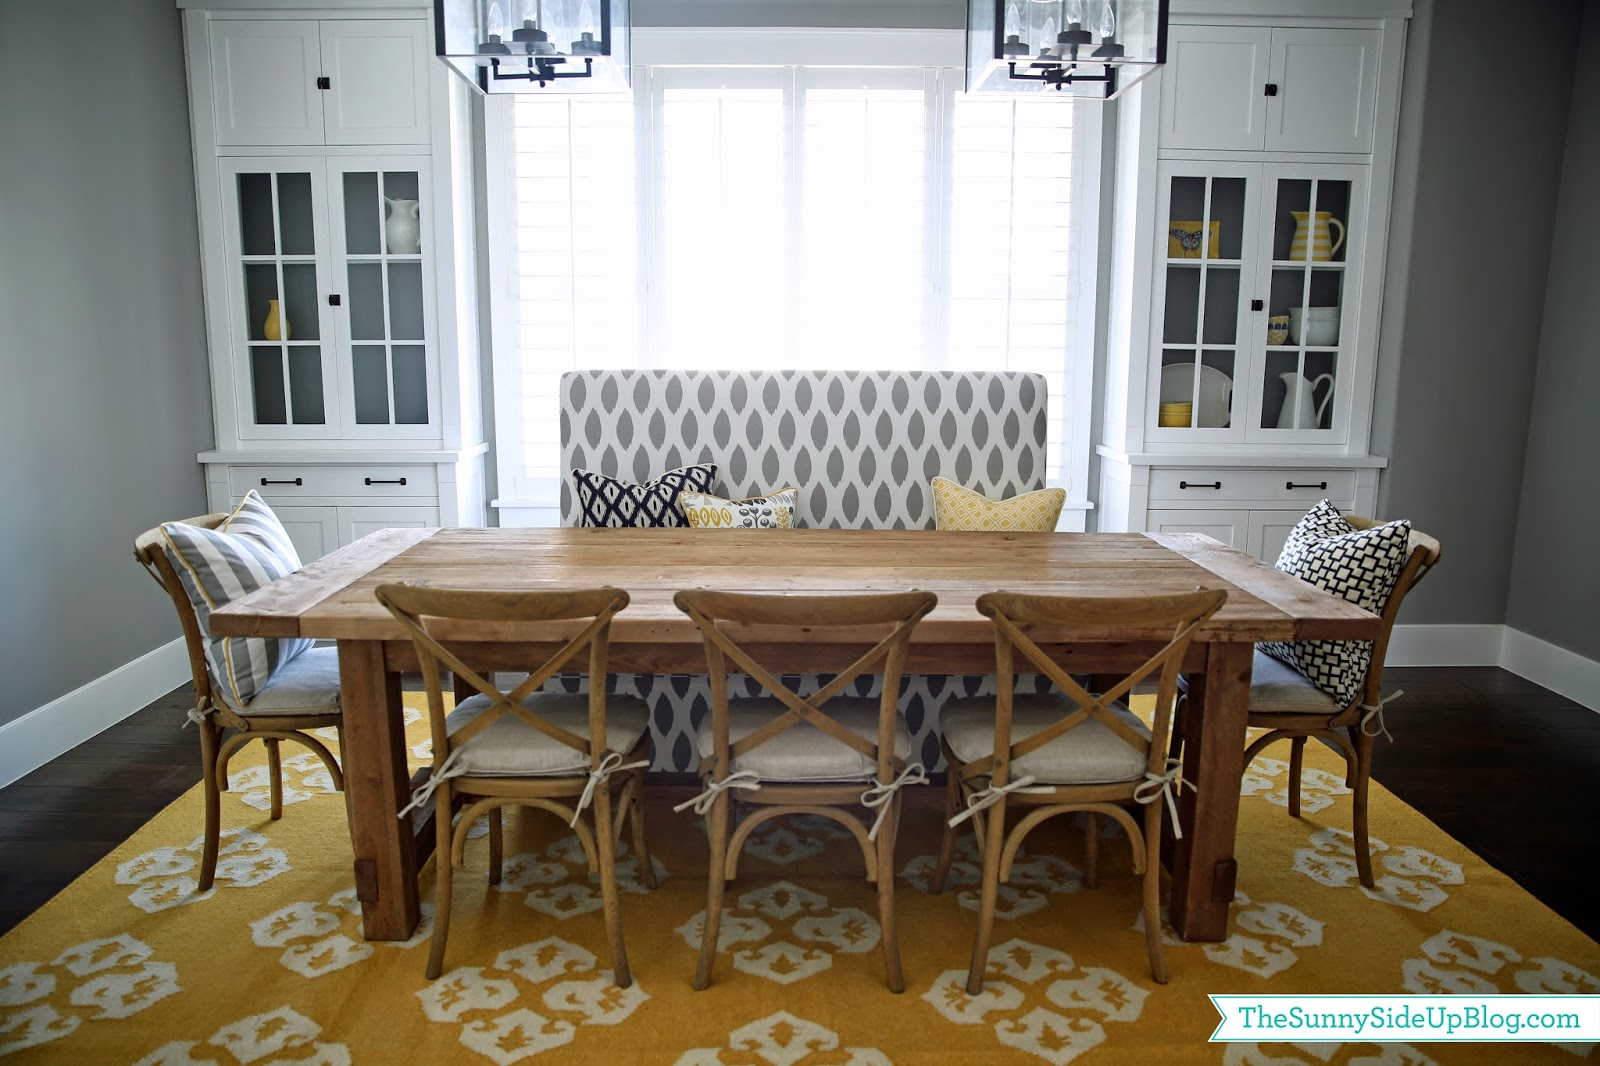 Awesome Dining Room Decor Update (bench, Chairs, Pillows)